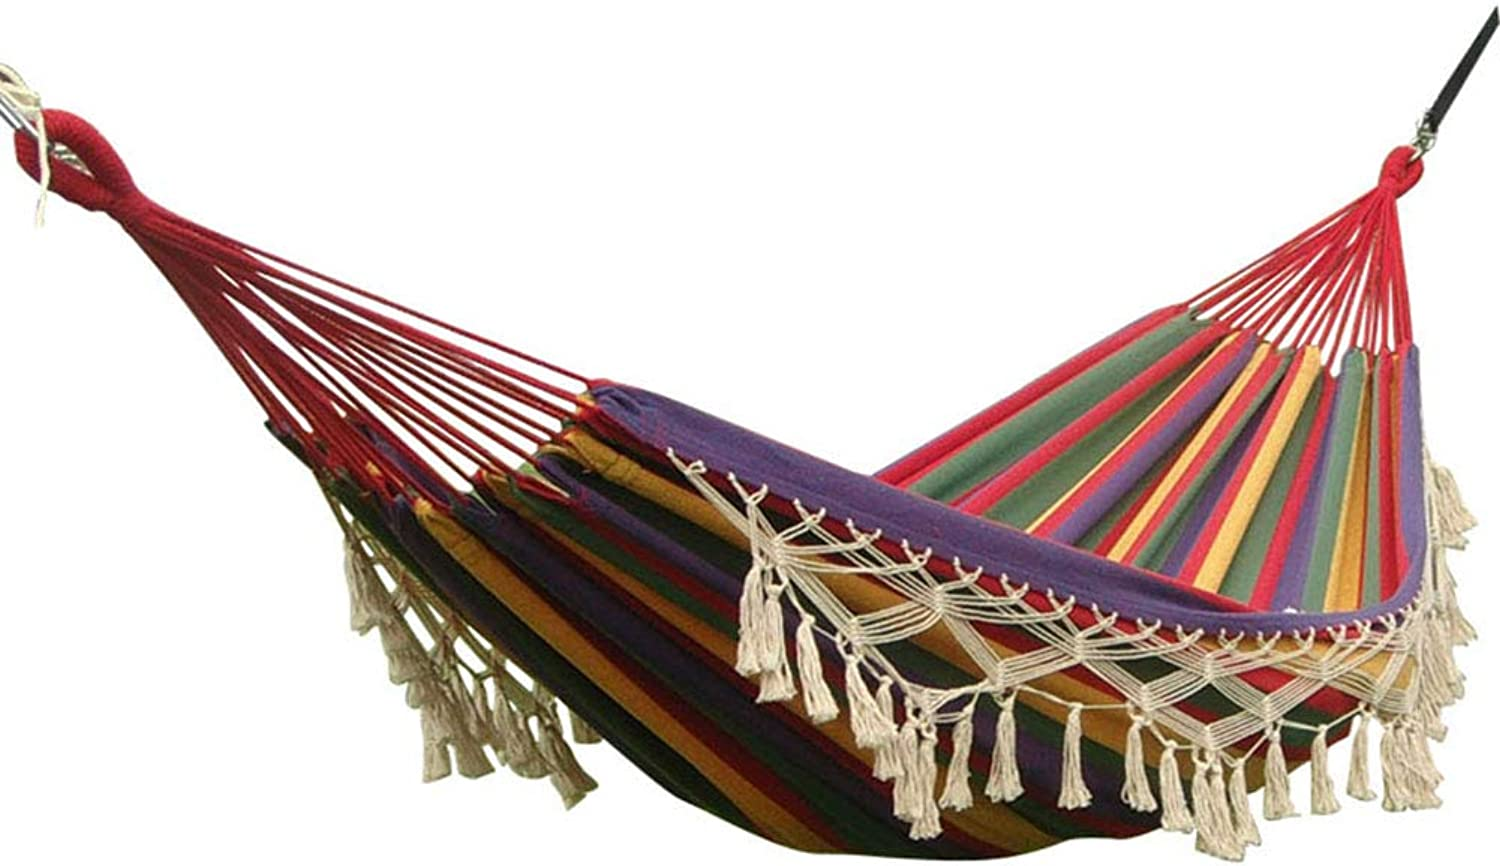 Brazilian Style Double Hammock with Tassel, Supreme Comfort Lightweight Double Hammocks  for Patio, Porch, Use in Exterior and Interior Hammock